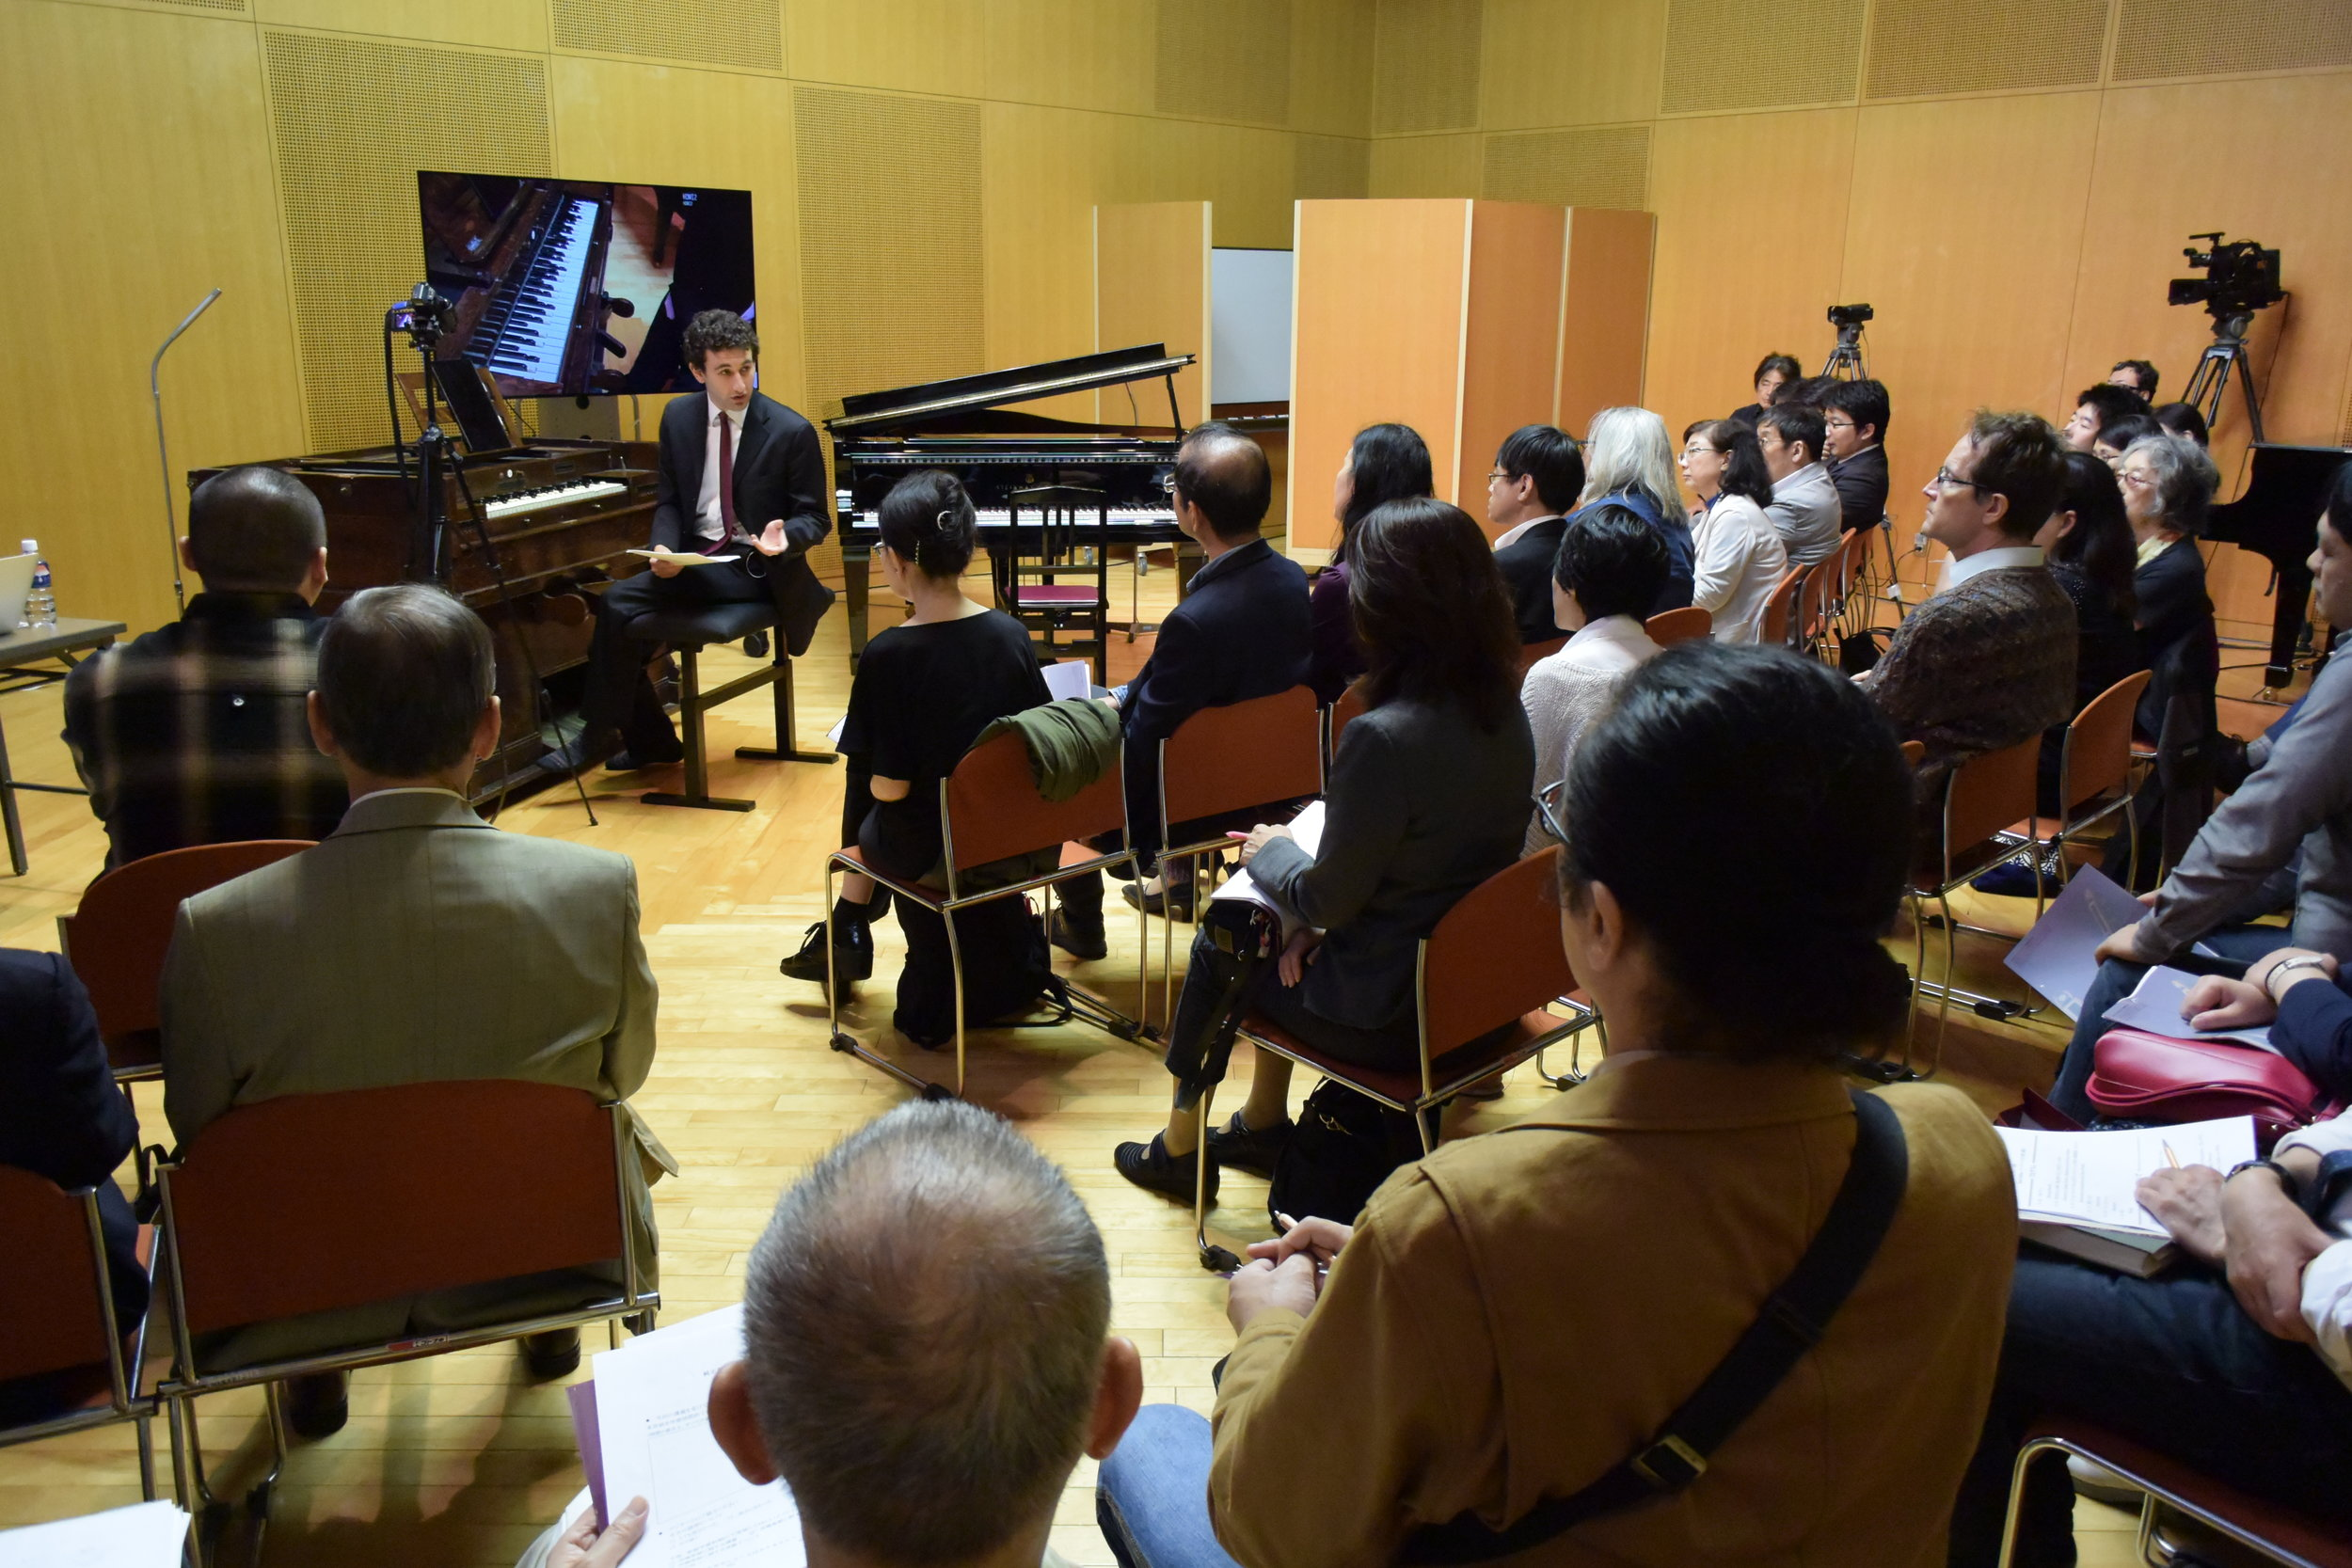 Presenting Tanaka's enharmonium at the workshop and lecture-recital with Dr. Tanaka Tasuku at Kunitachi College of Music on September 29, 2018.